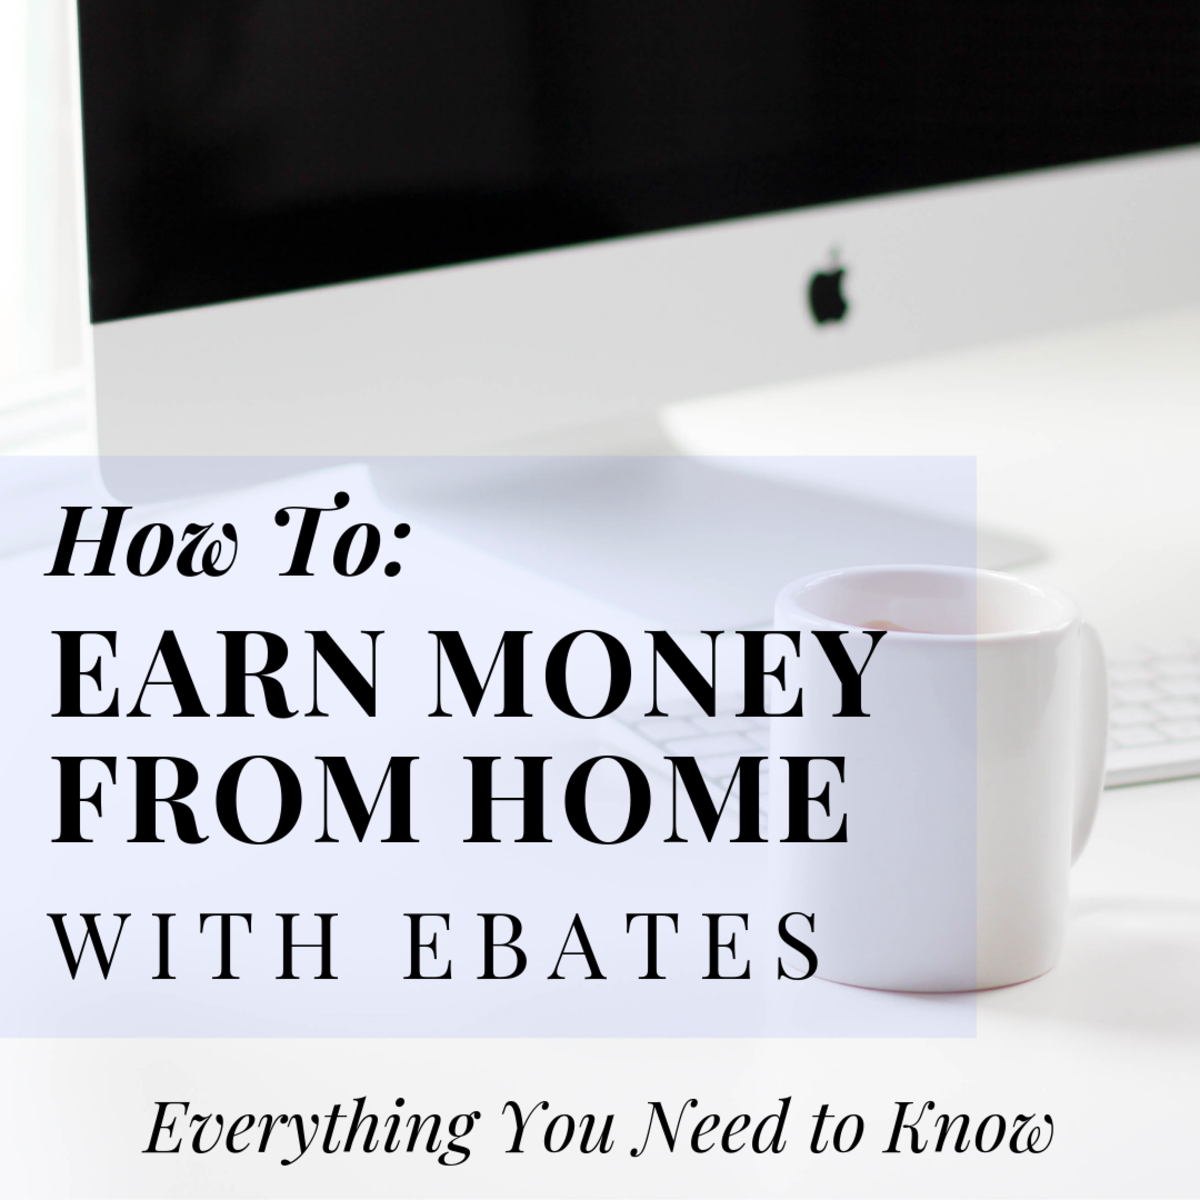 How to Earn Money From Home With Rakuten (Formerly Ebates)